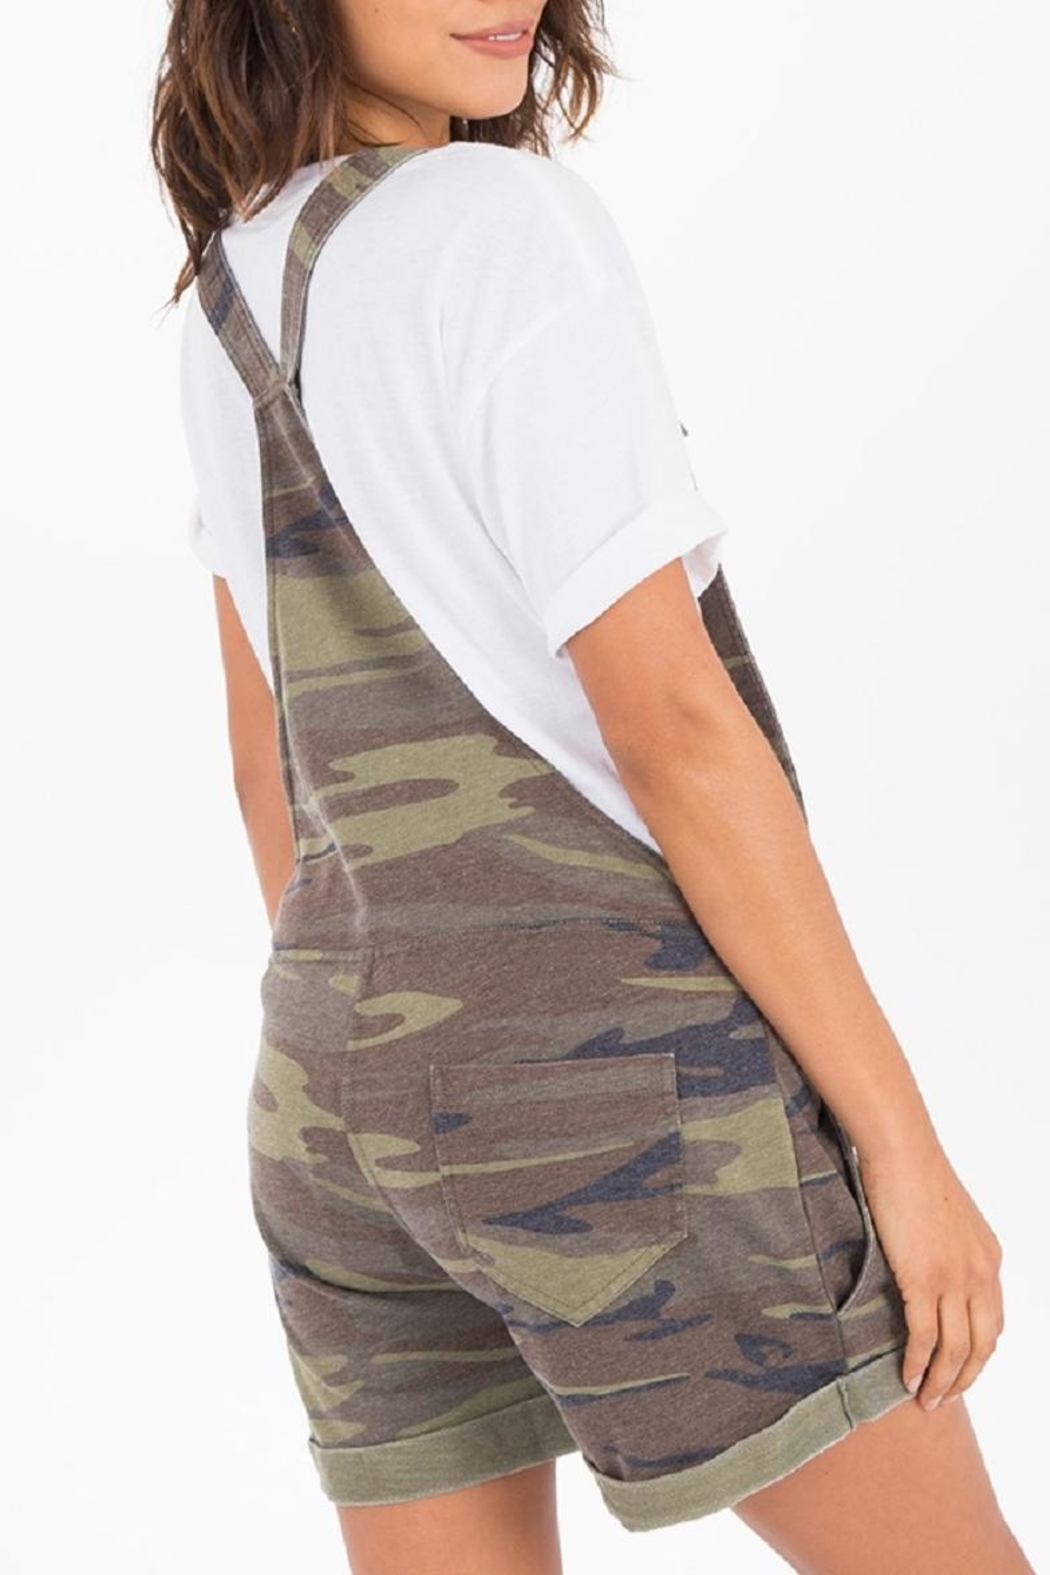 z supply Camo Short Overalls - Side Cropped Image